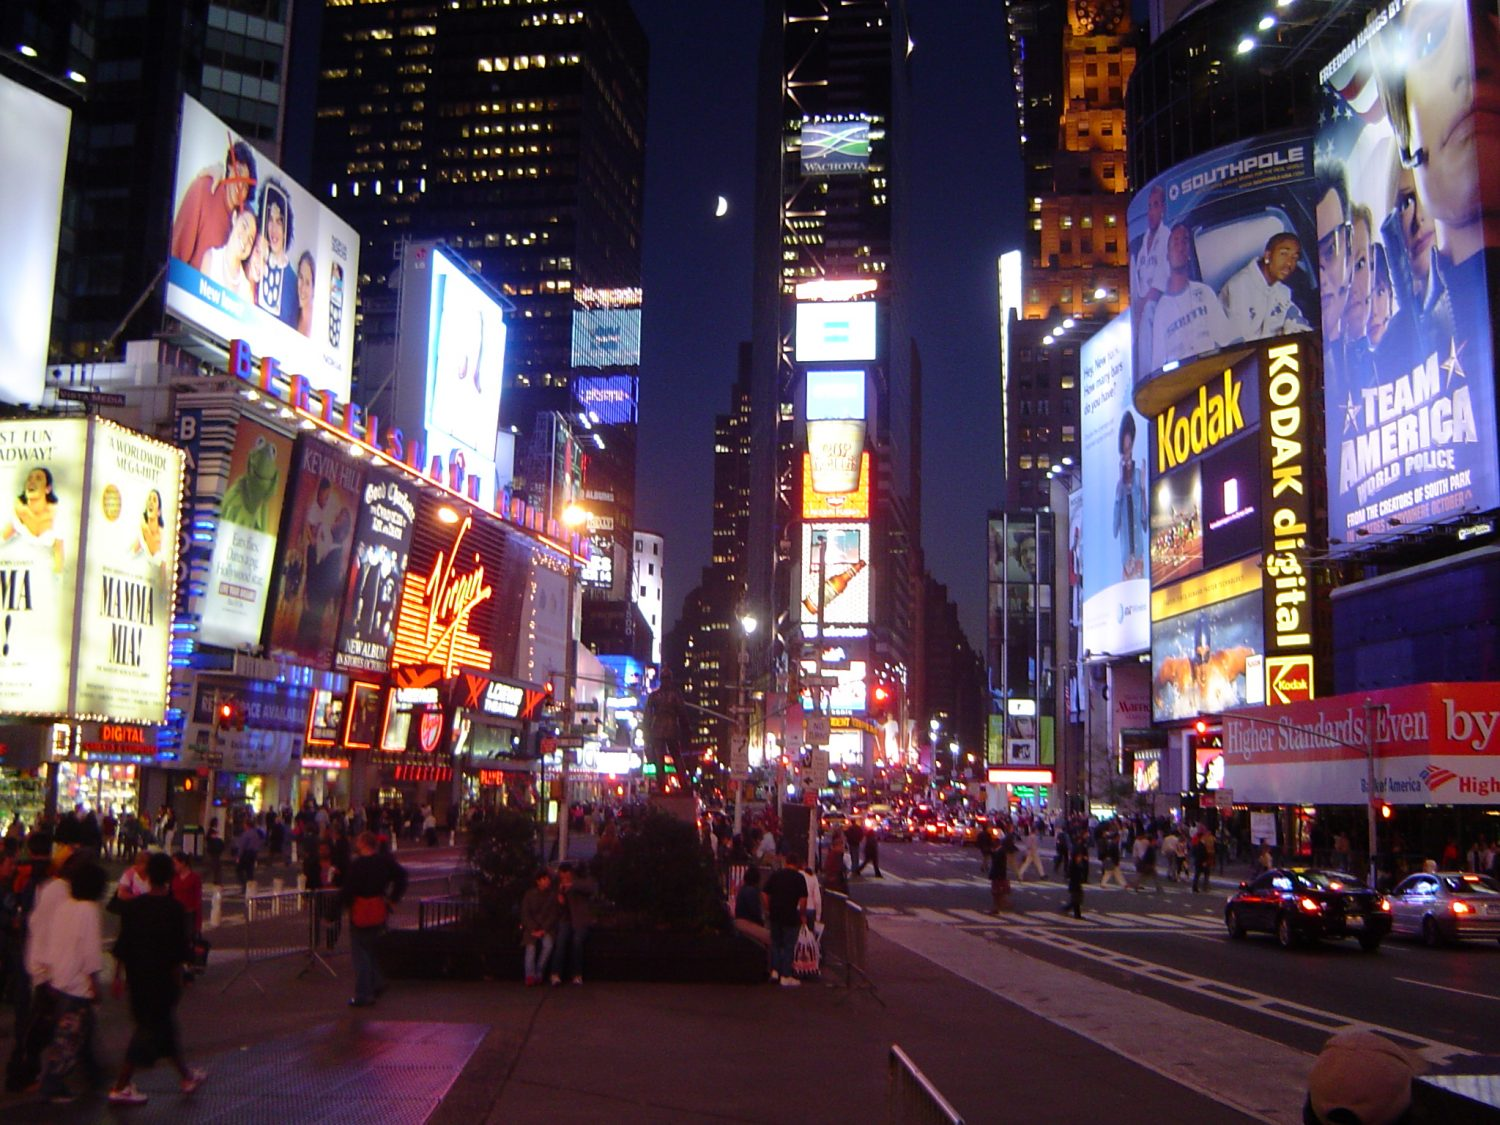 Times Square in New York City at night.